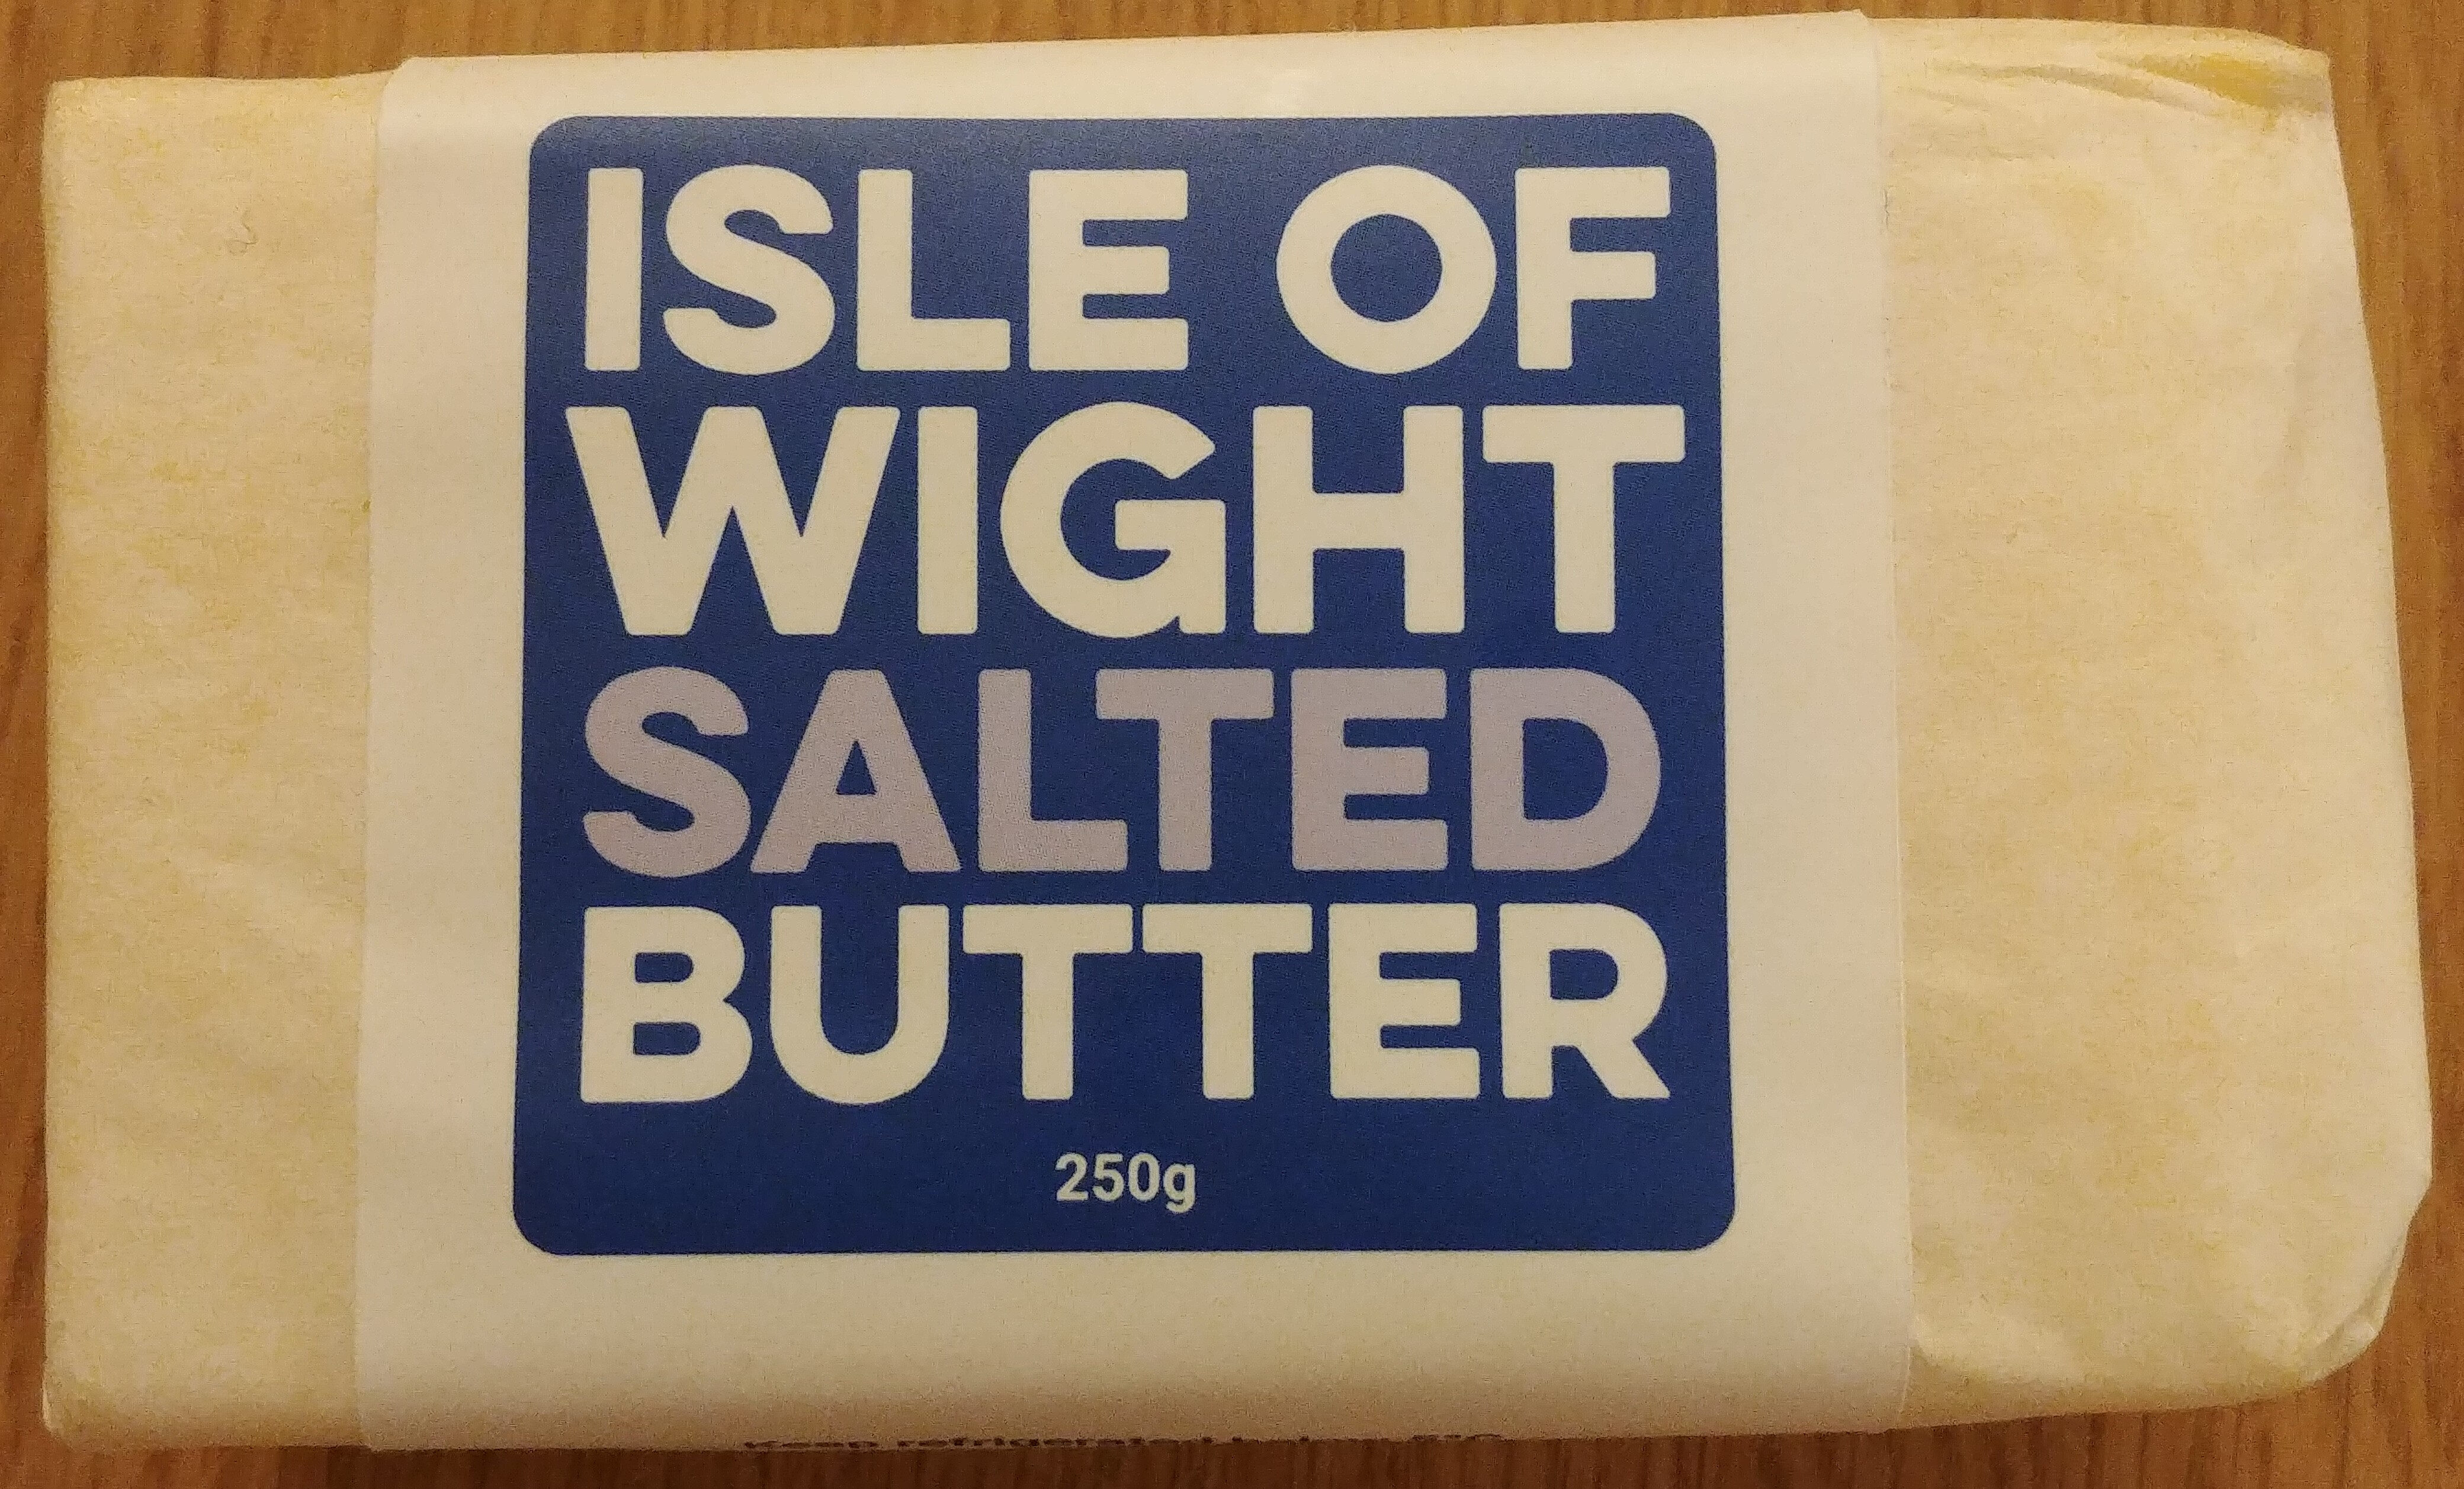 Isle of Wight Salted Butter - Product - en